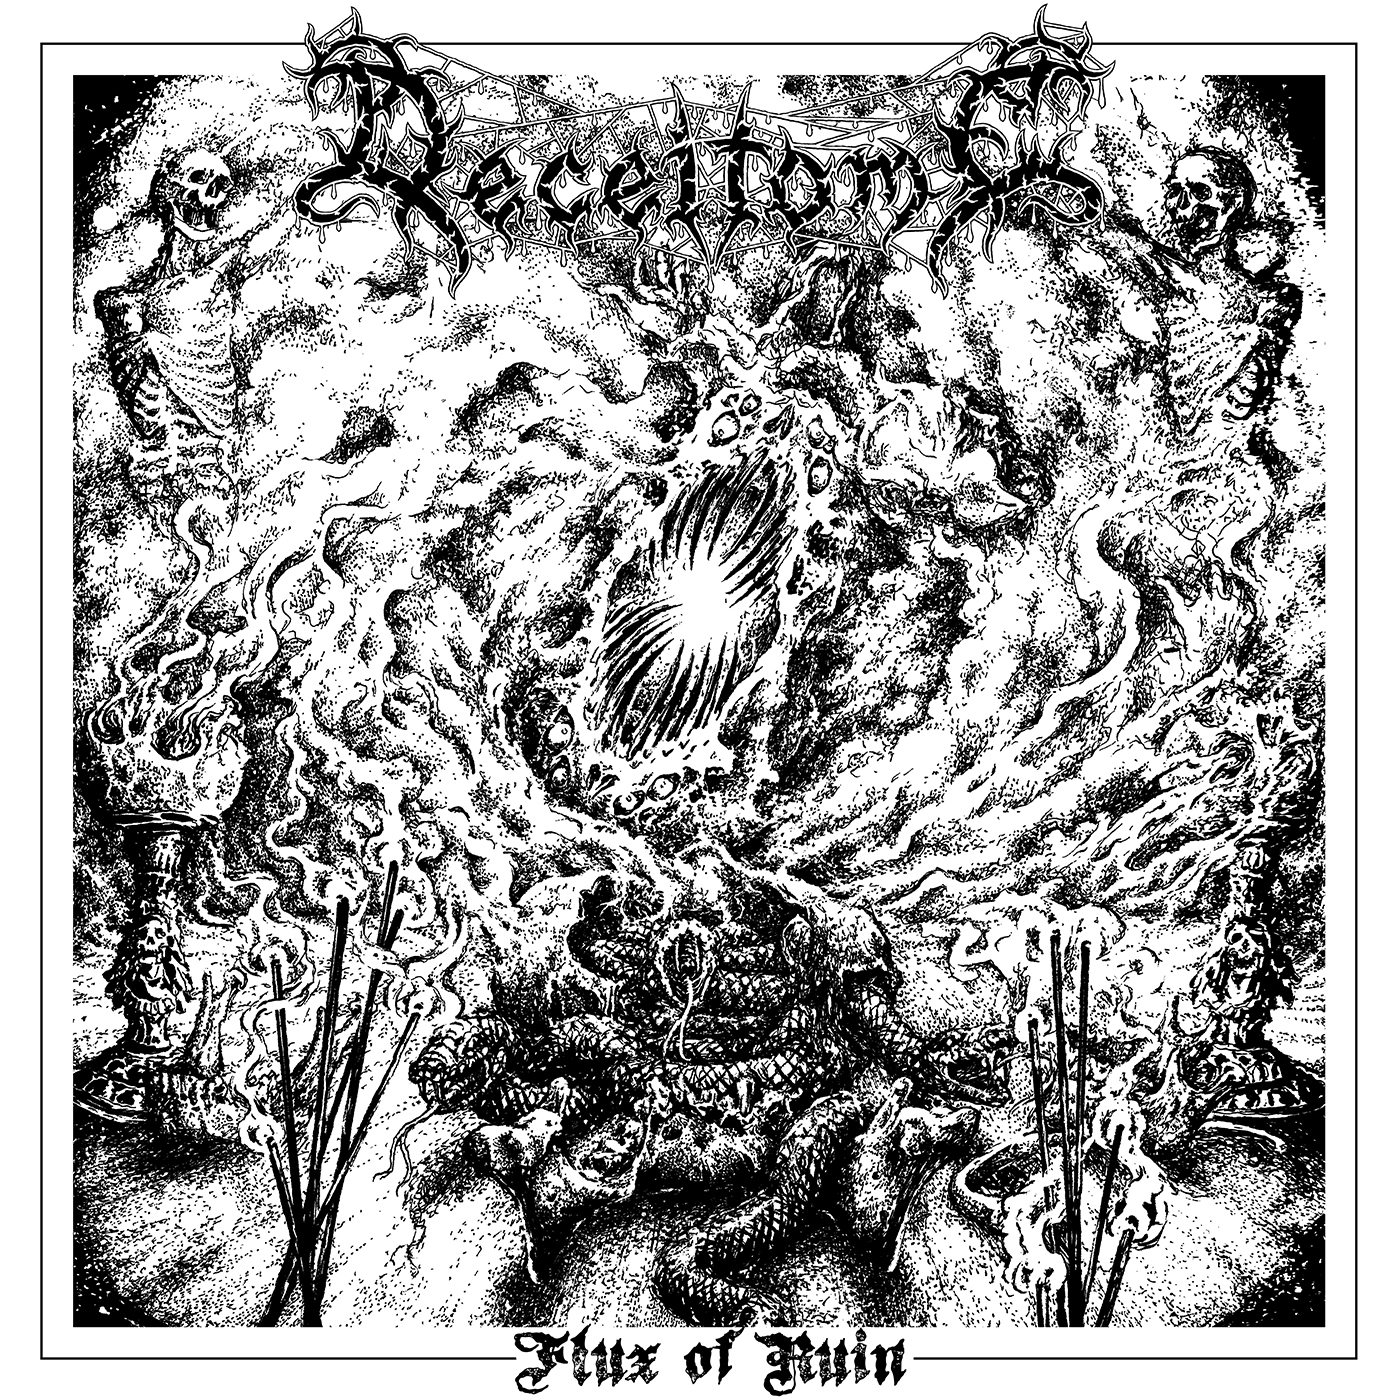 DECEITOME - Flux of Ruin EP